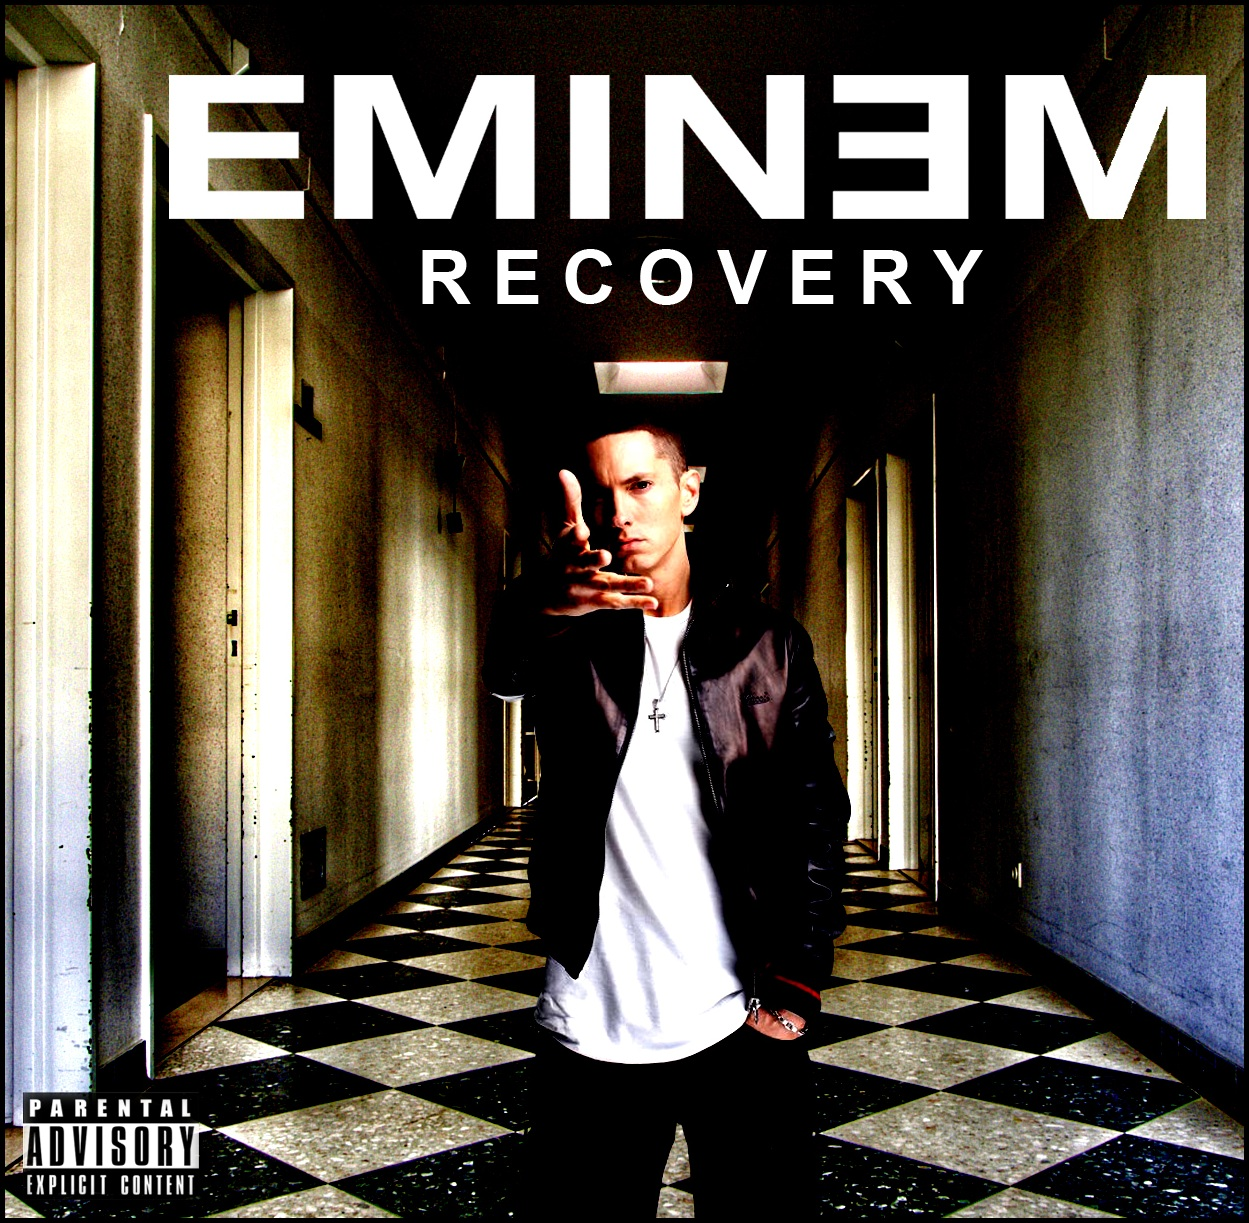 http://4.bp.blogspot.com/-oPtinKcDBRs/Tts7X0sSbLI/AAAAAAAAFTU/-BRbAqICeUU/s1600/Eminem+Recovery%252C+Eminem+-+Love+The+Way+You+Lie+feat.+Rihanna+Lyrics%252C+Mp3+%2526+Video+Song+Download+Free+-+Lyricspassion.blogspot.com.jpg